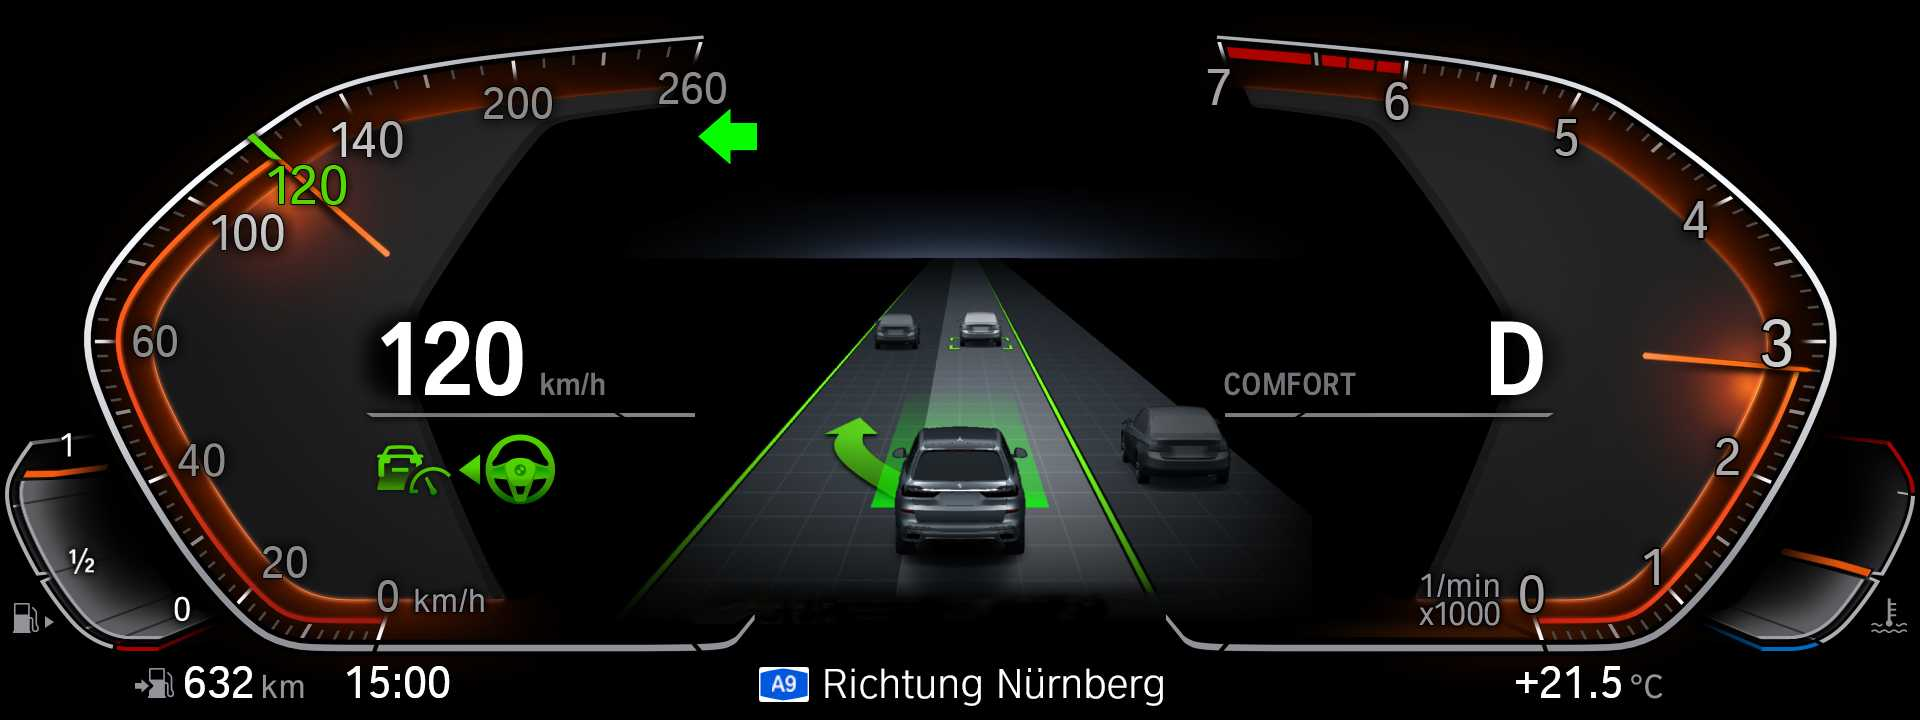 Driving Assistant Professional with real-time 3D visualisation of the surrounding area